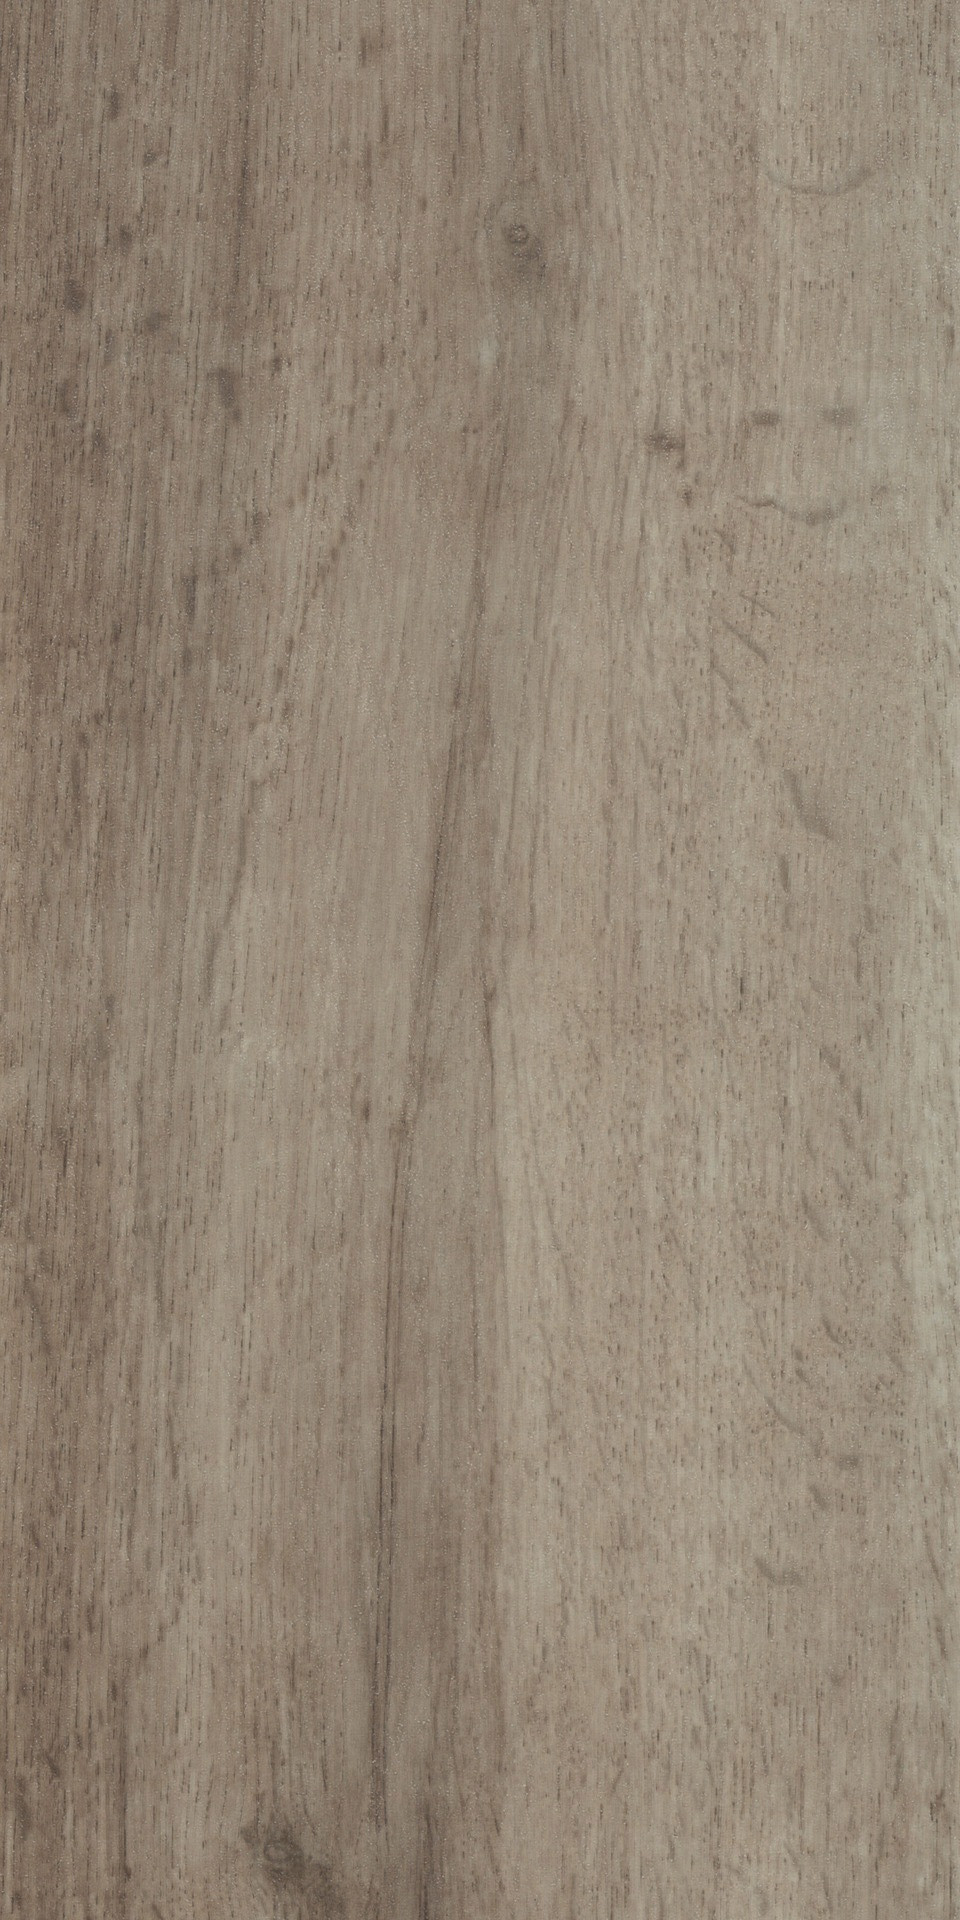 oak hardwood flooring of 26 unique grey hardwood floors photos flooring design ideas for grey hardwood floors best of forbo allura flex 0 55 grey autumn oak selbstliegender vinylboden images